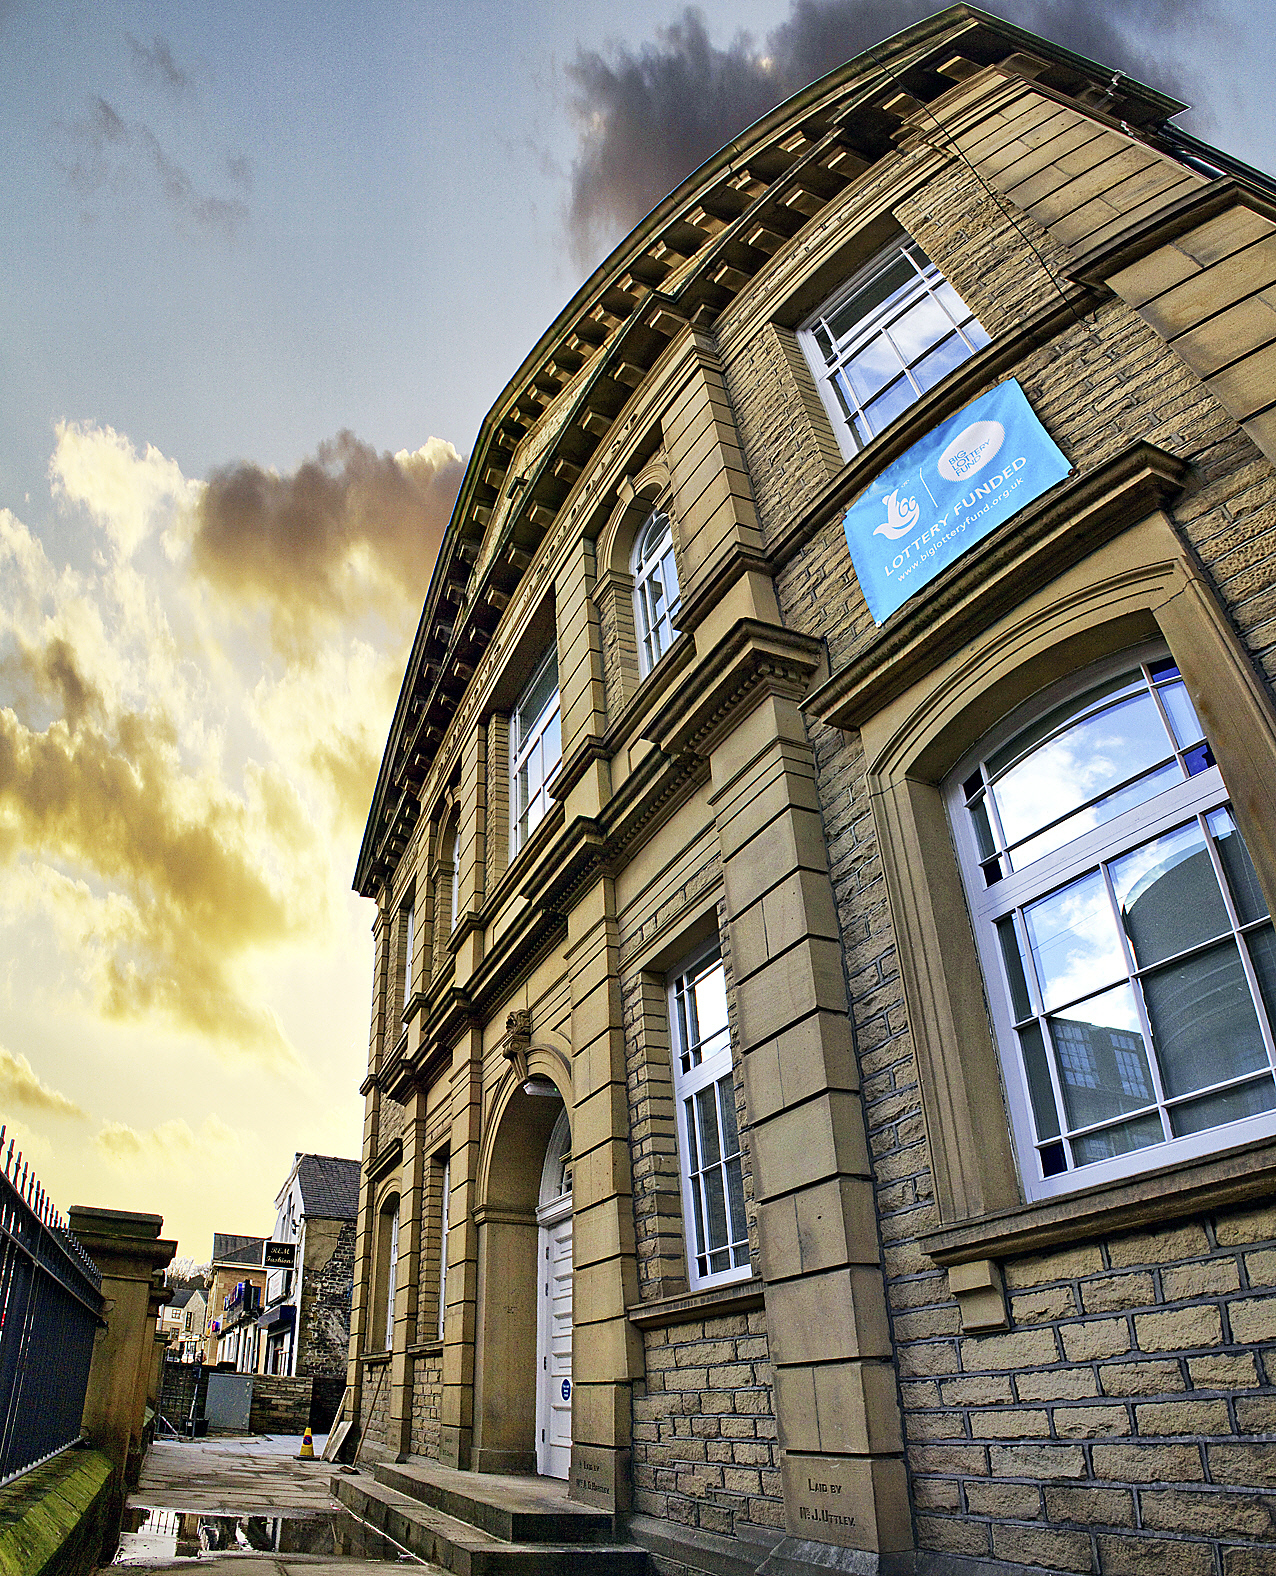 Central Hall, Alice Street, Keighley